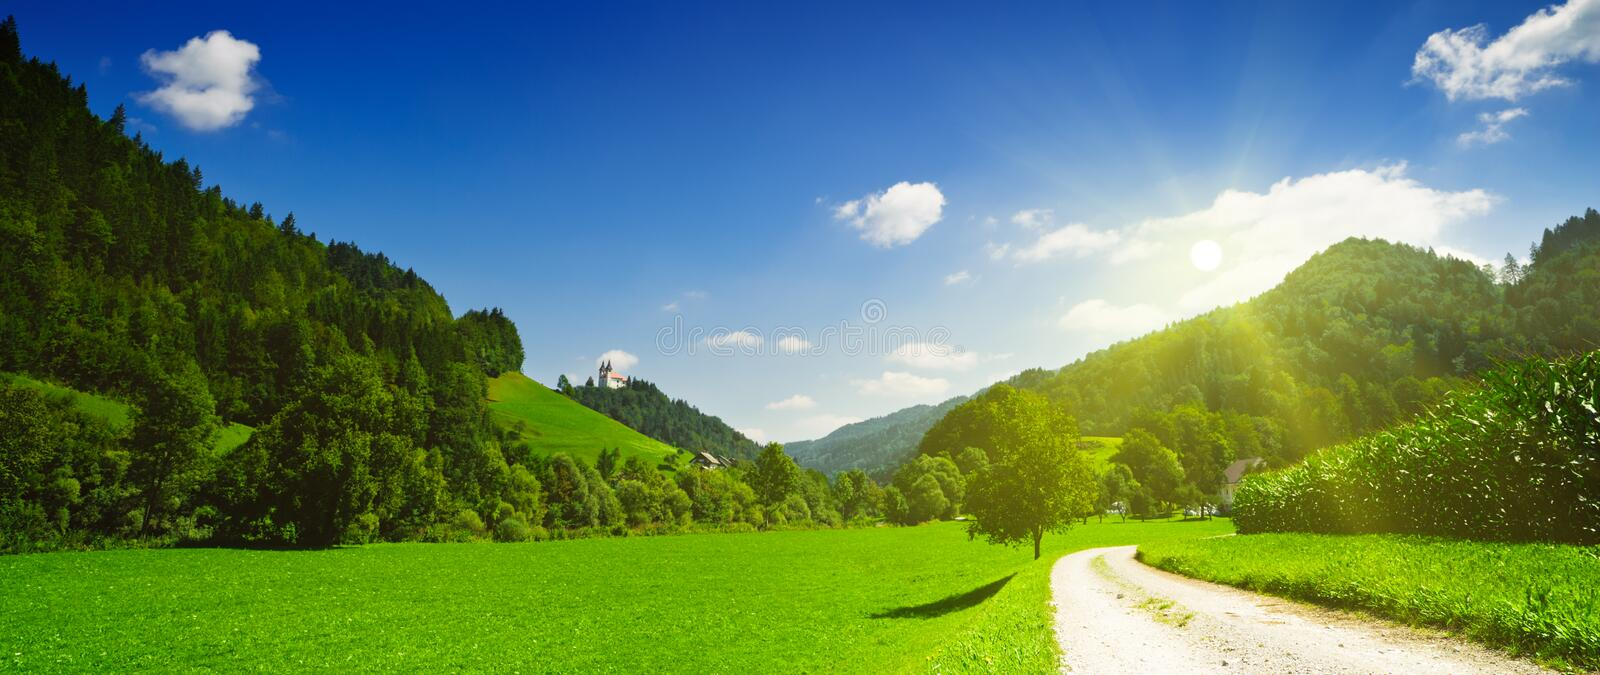 Idyllic Countryside Panoramic View Royalty Free Stock Images